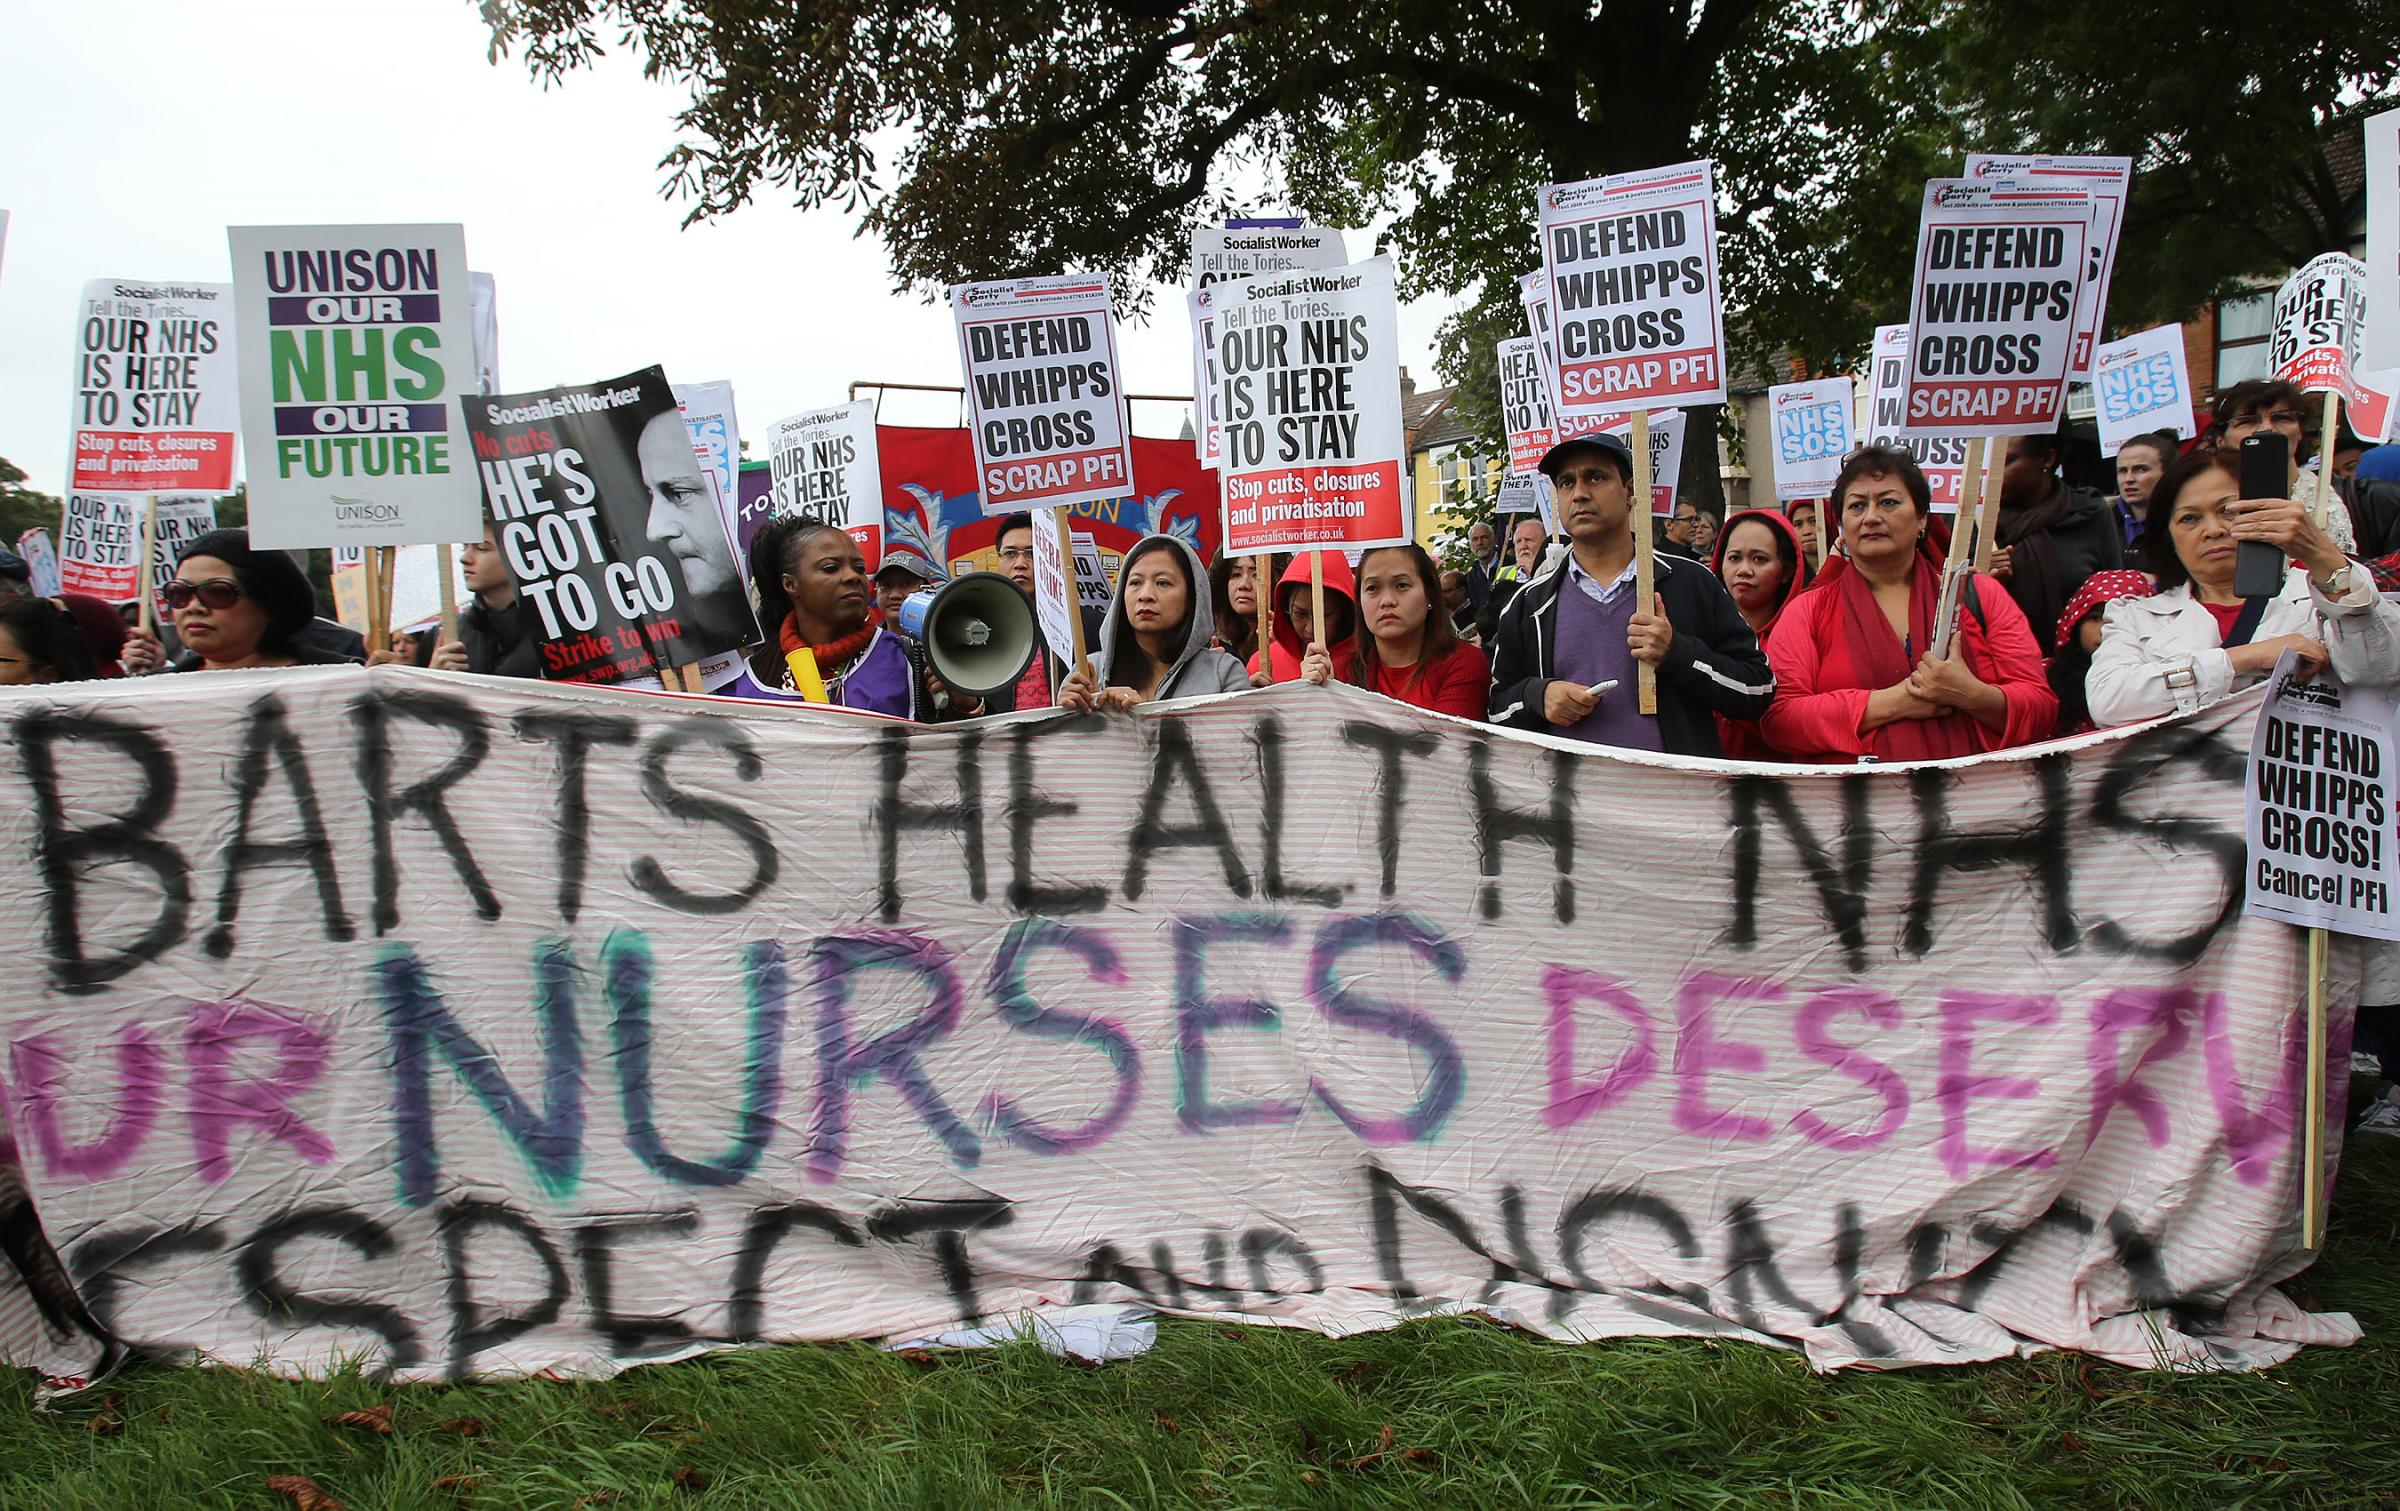 NHS staff at a Unison march at Whipps Cross Hospital in September 2013